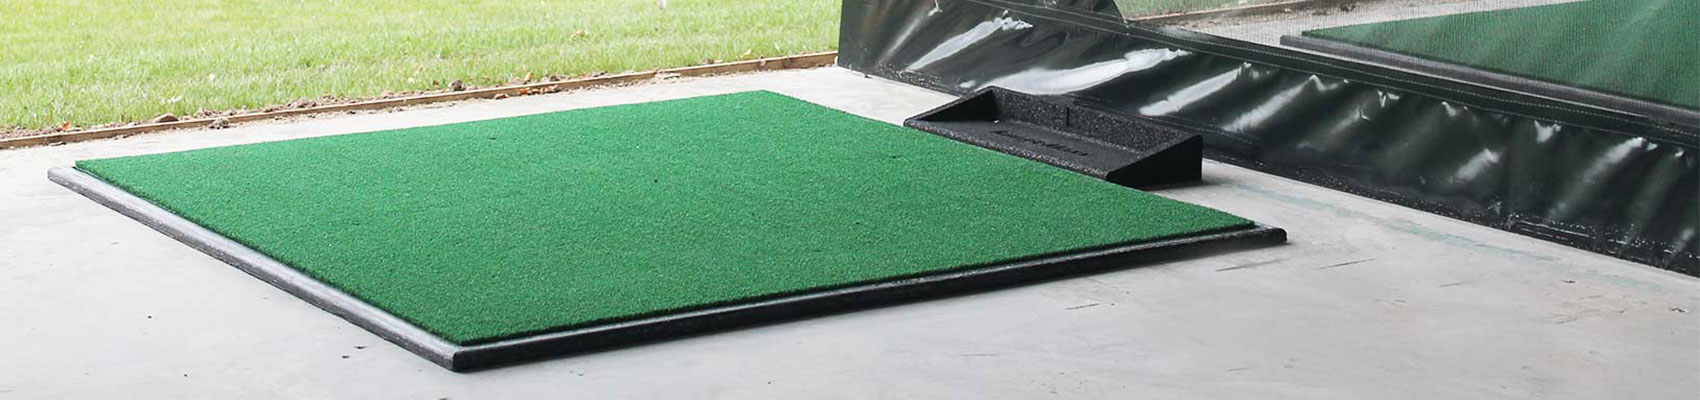 Driving Range Golf Mats